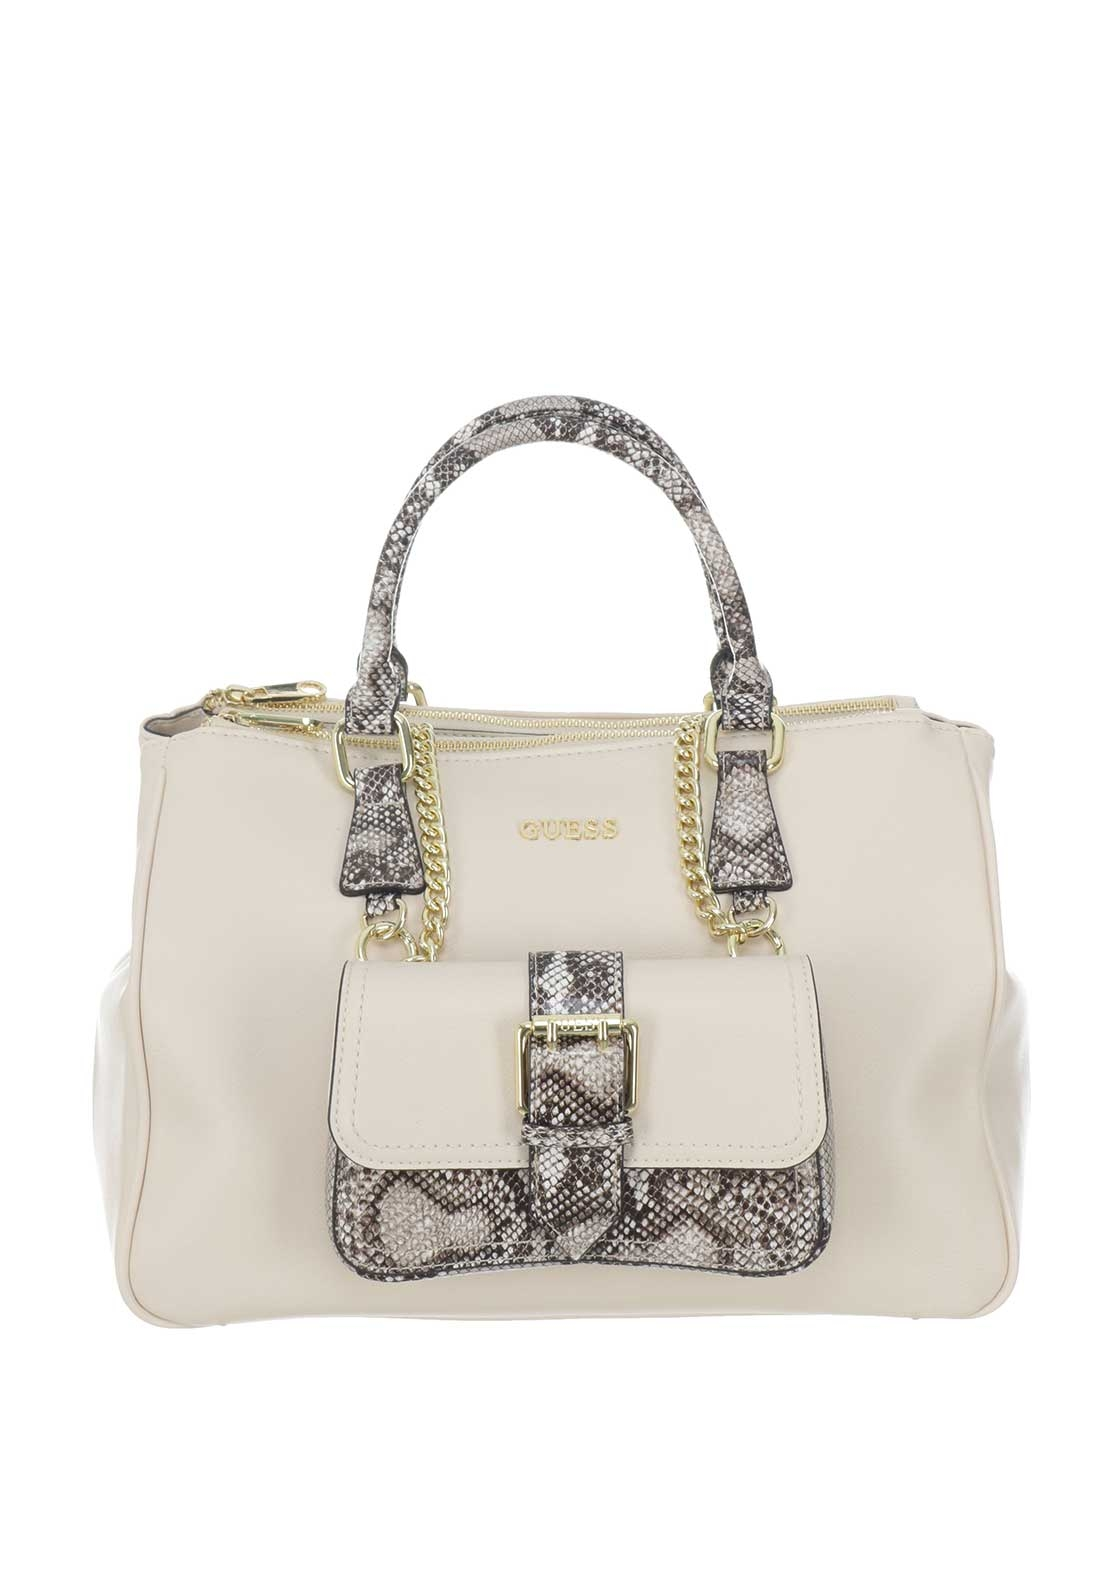 Guess sissi schoudertas : Guess sissi double up grab bag ivory mcelhinneys